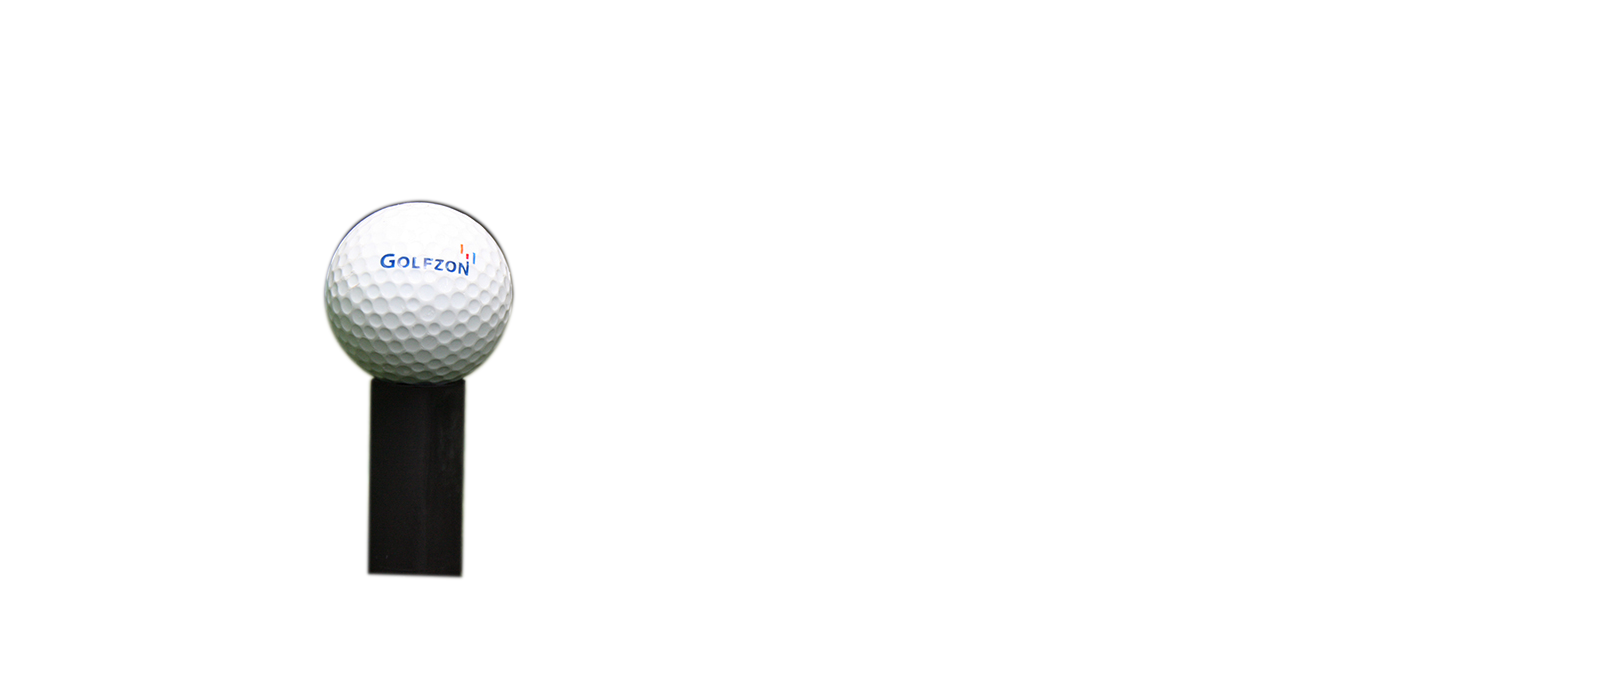 Golf tee and ball png. Index of static common